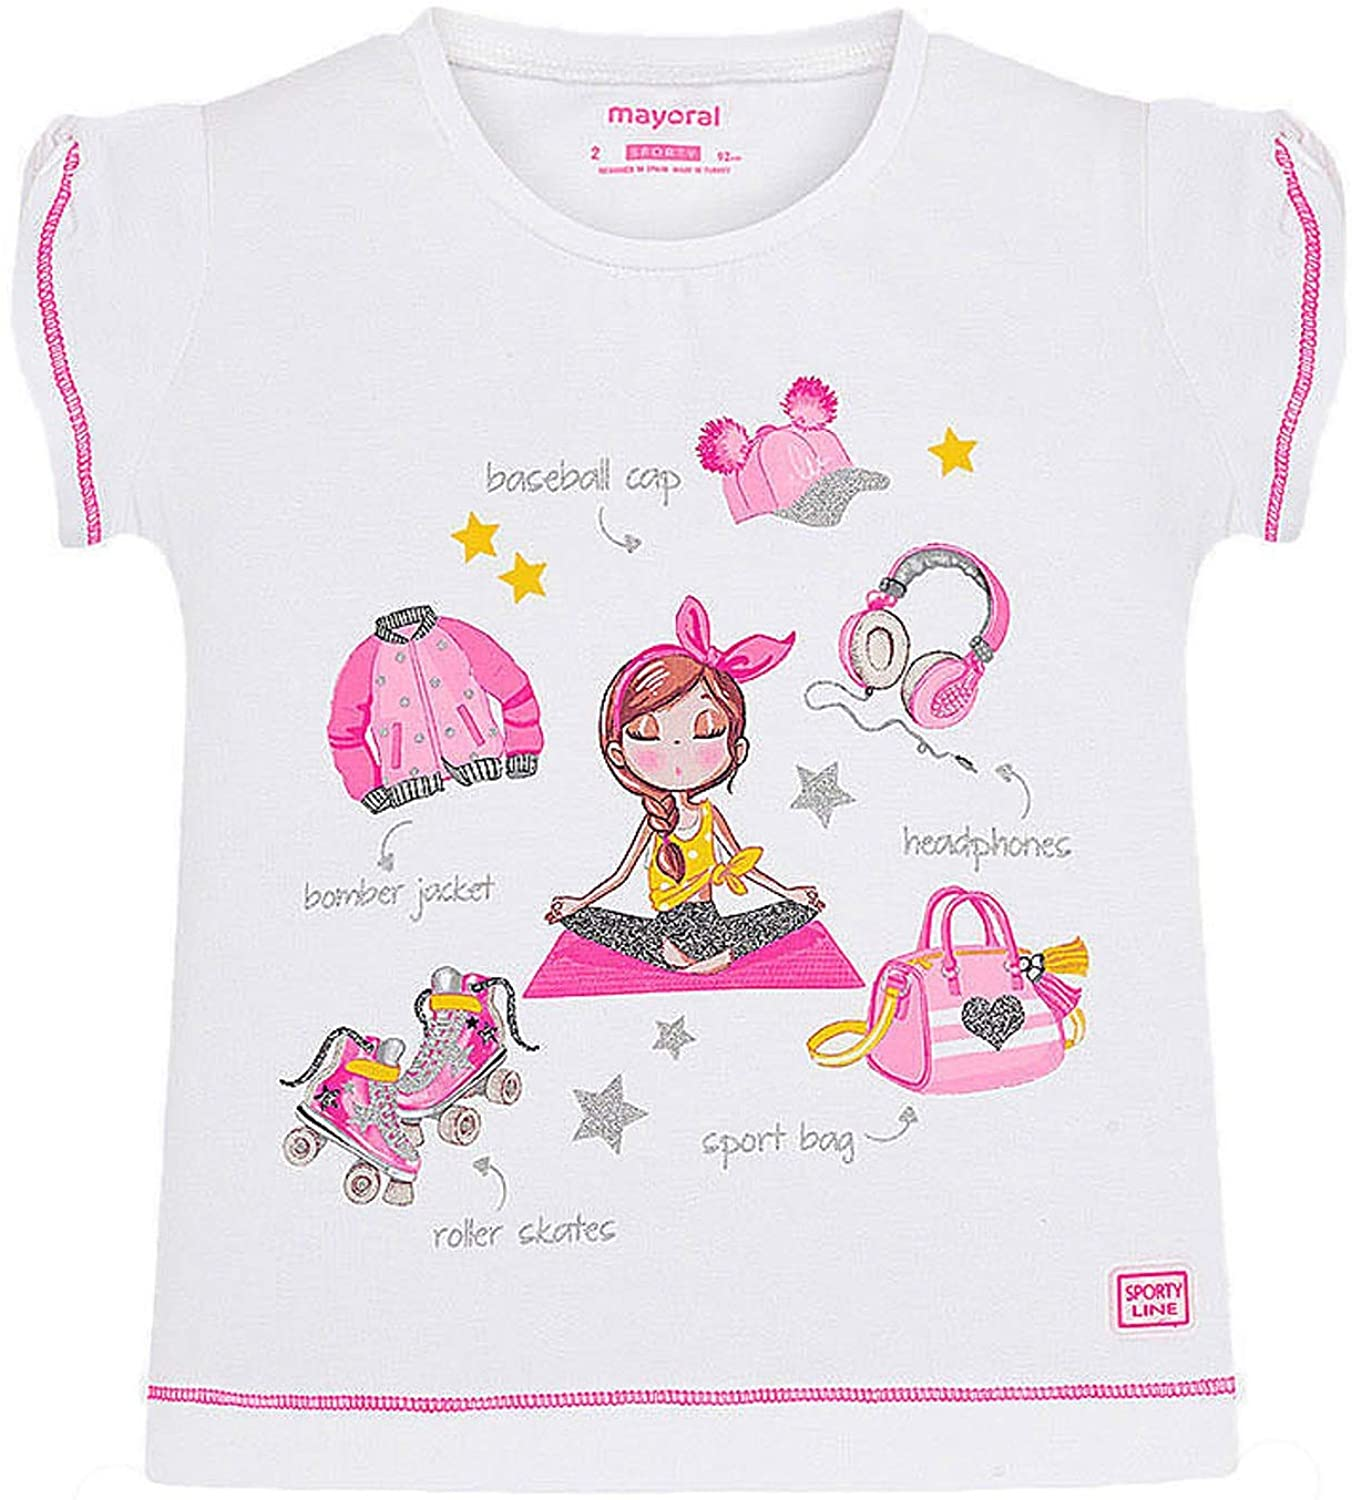 Mayoral - S/s t-Shirt for Girls - 3016, Bubblegum